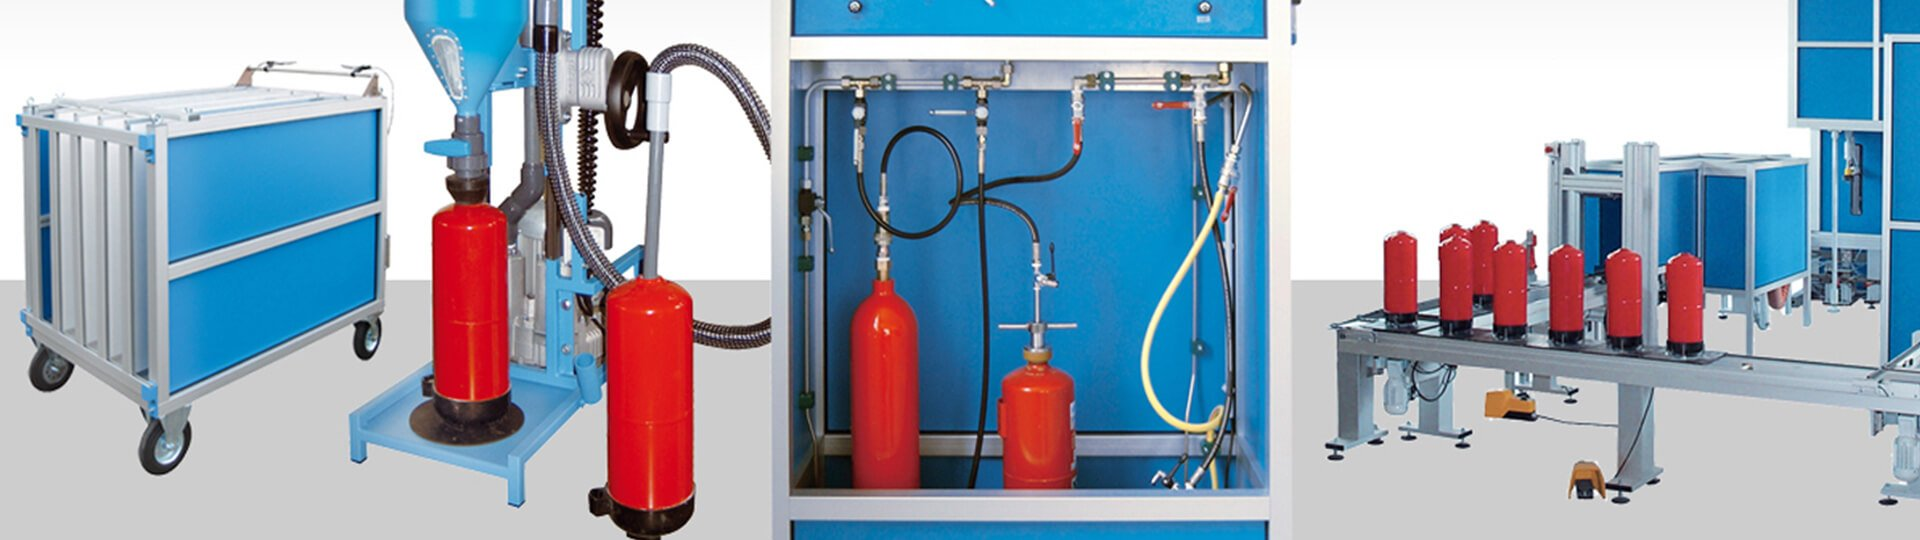 Filling, Testing, Drying, Screwing of Fire extinguishers